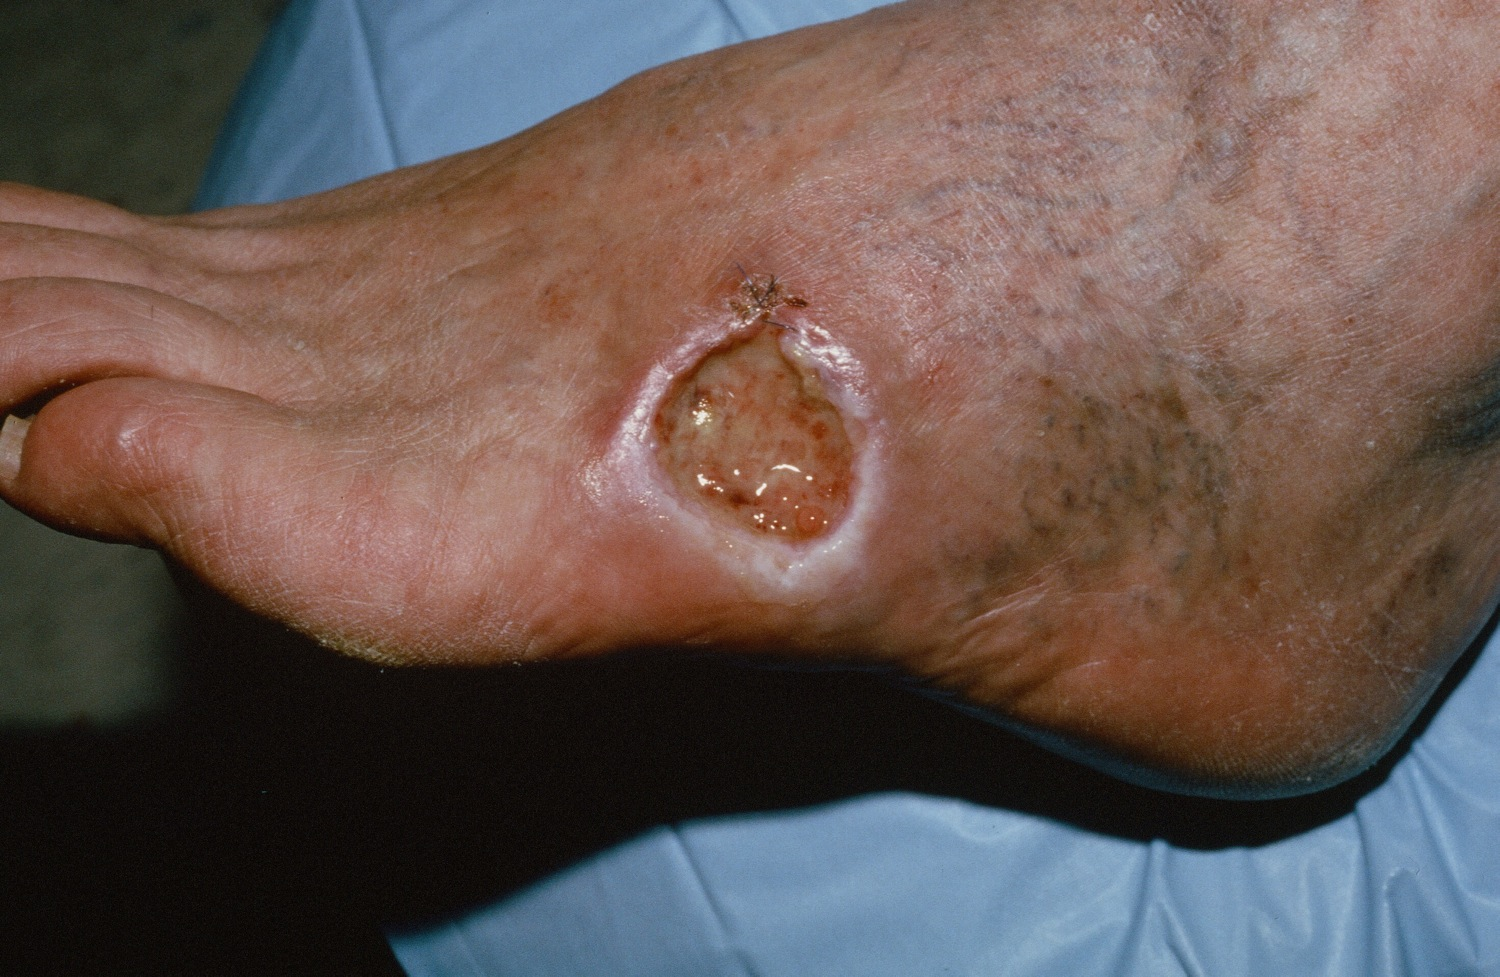 basal cell carcinoma on foot - untreated